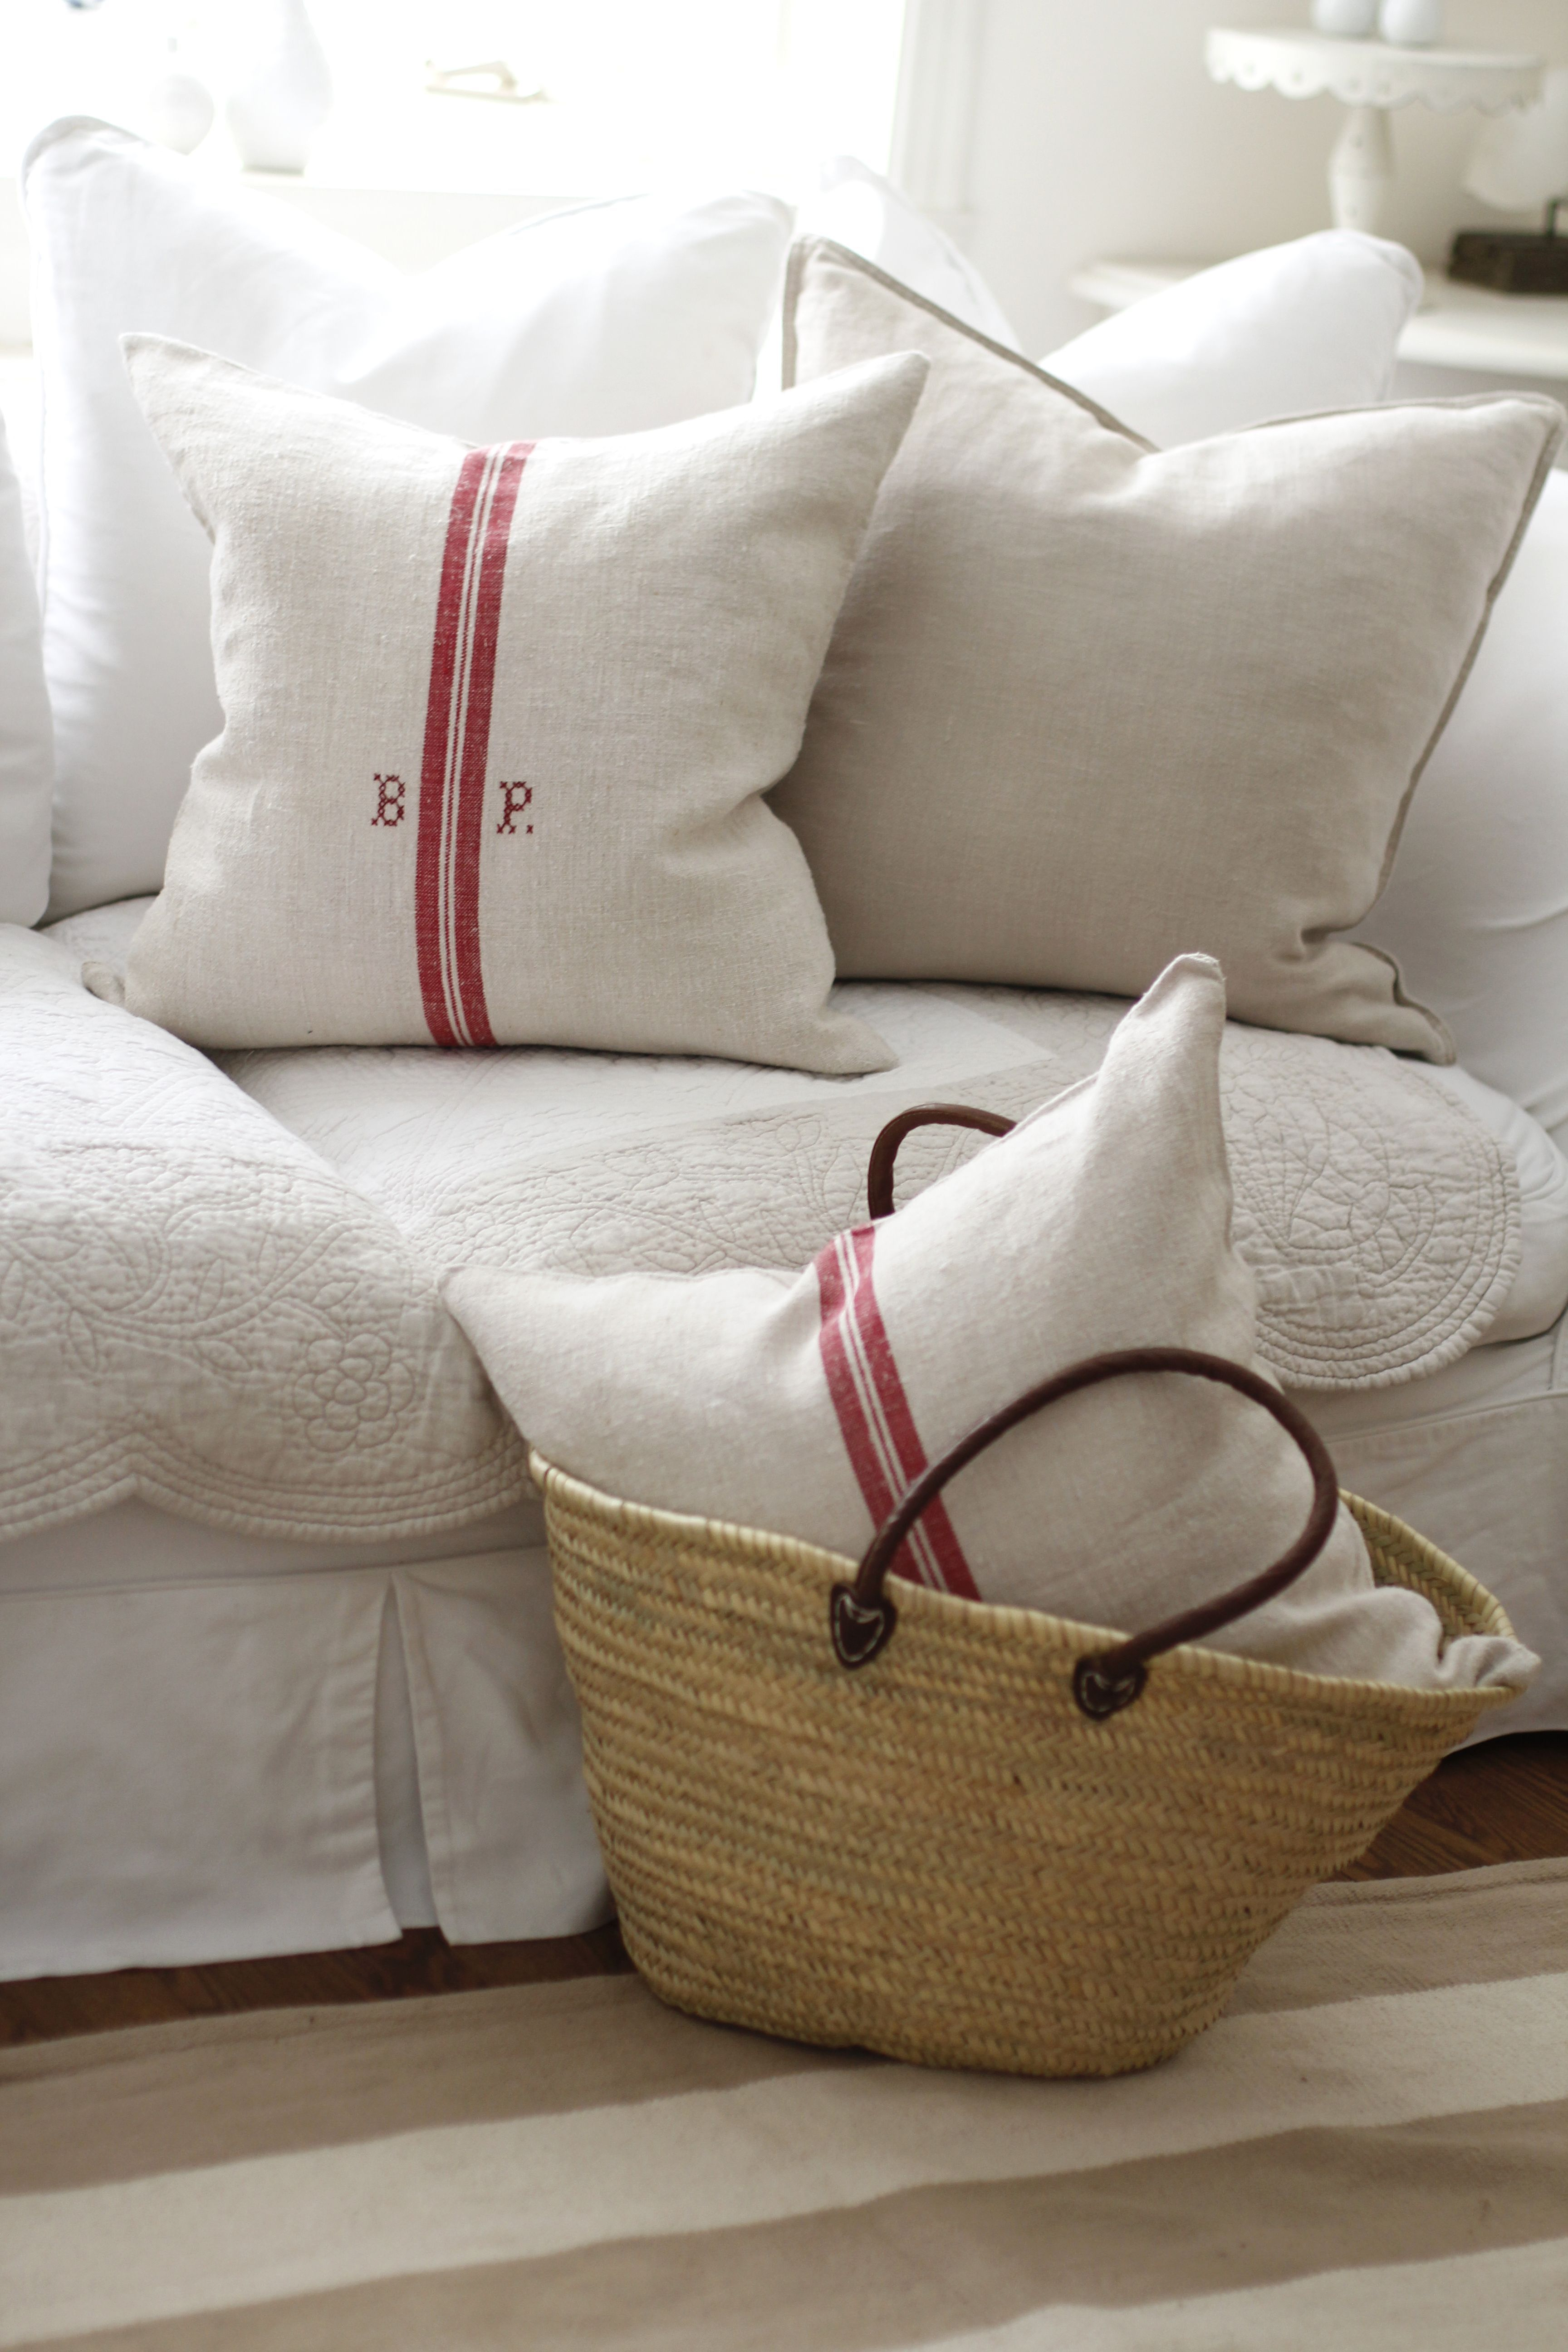 Gelbes esszimmer dekor inspiration in white red and white linen  leinen kissen und